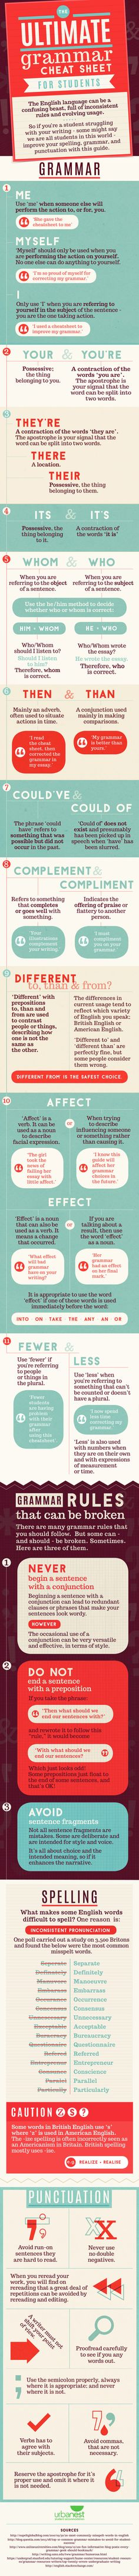 The Ultimate Grammar Cheat Sheet for Those Who Didn't Listen in School | Red Website Design Blog